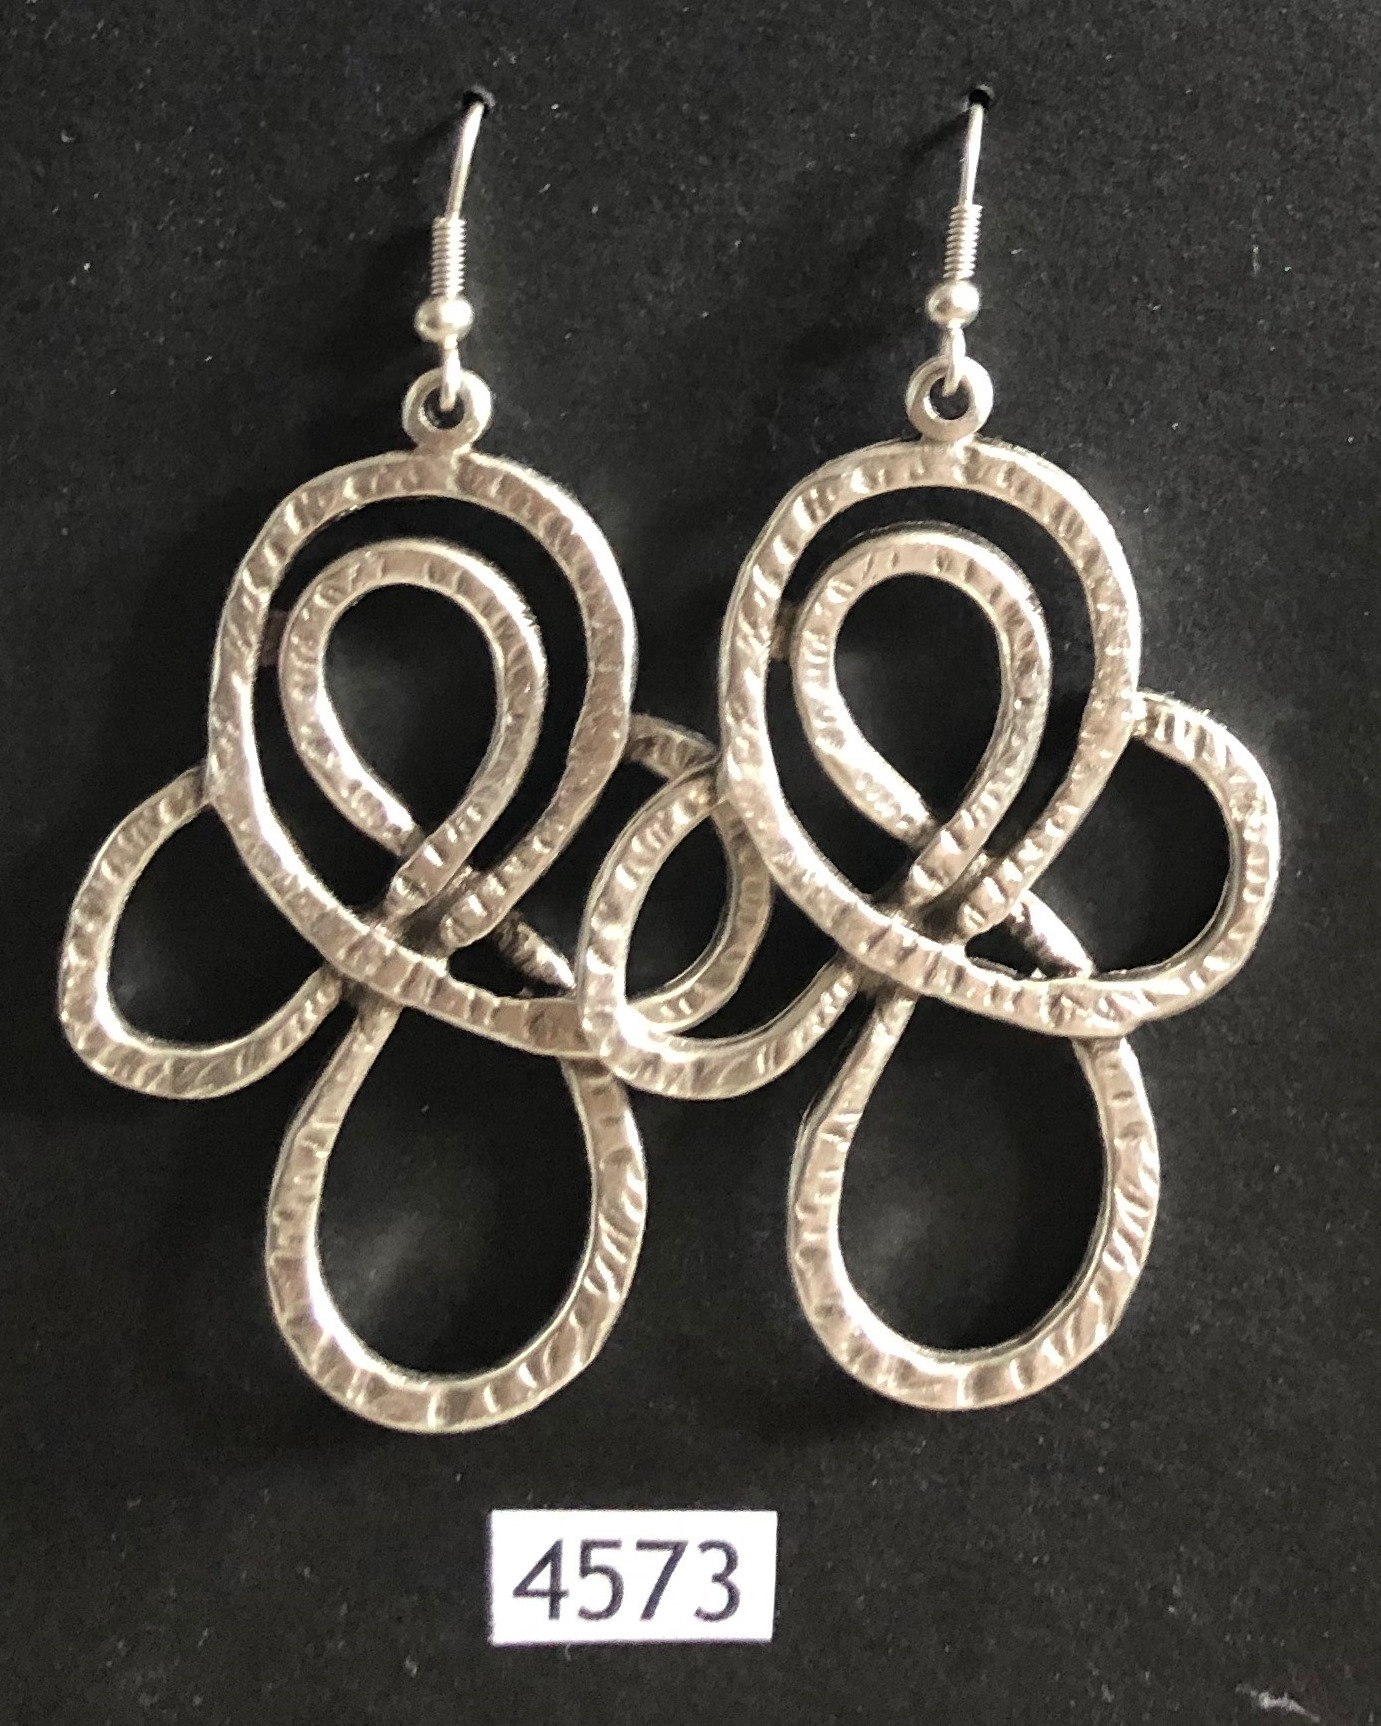 EARRINGS 4573